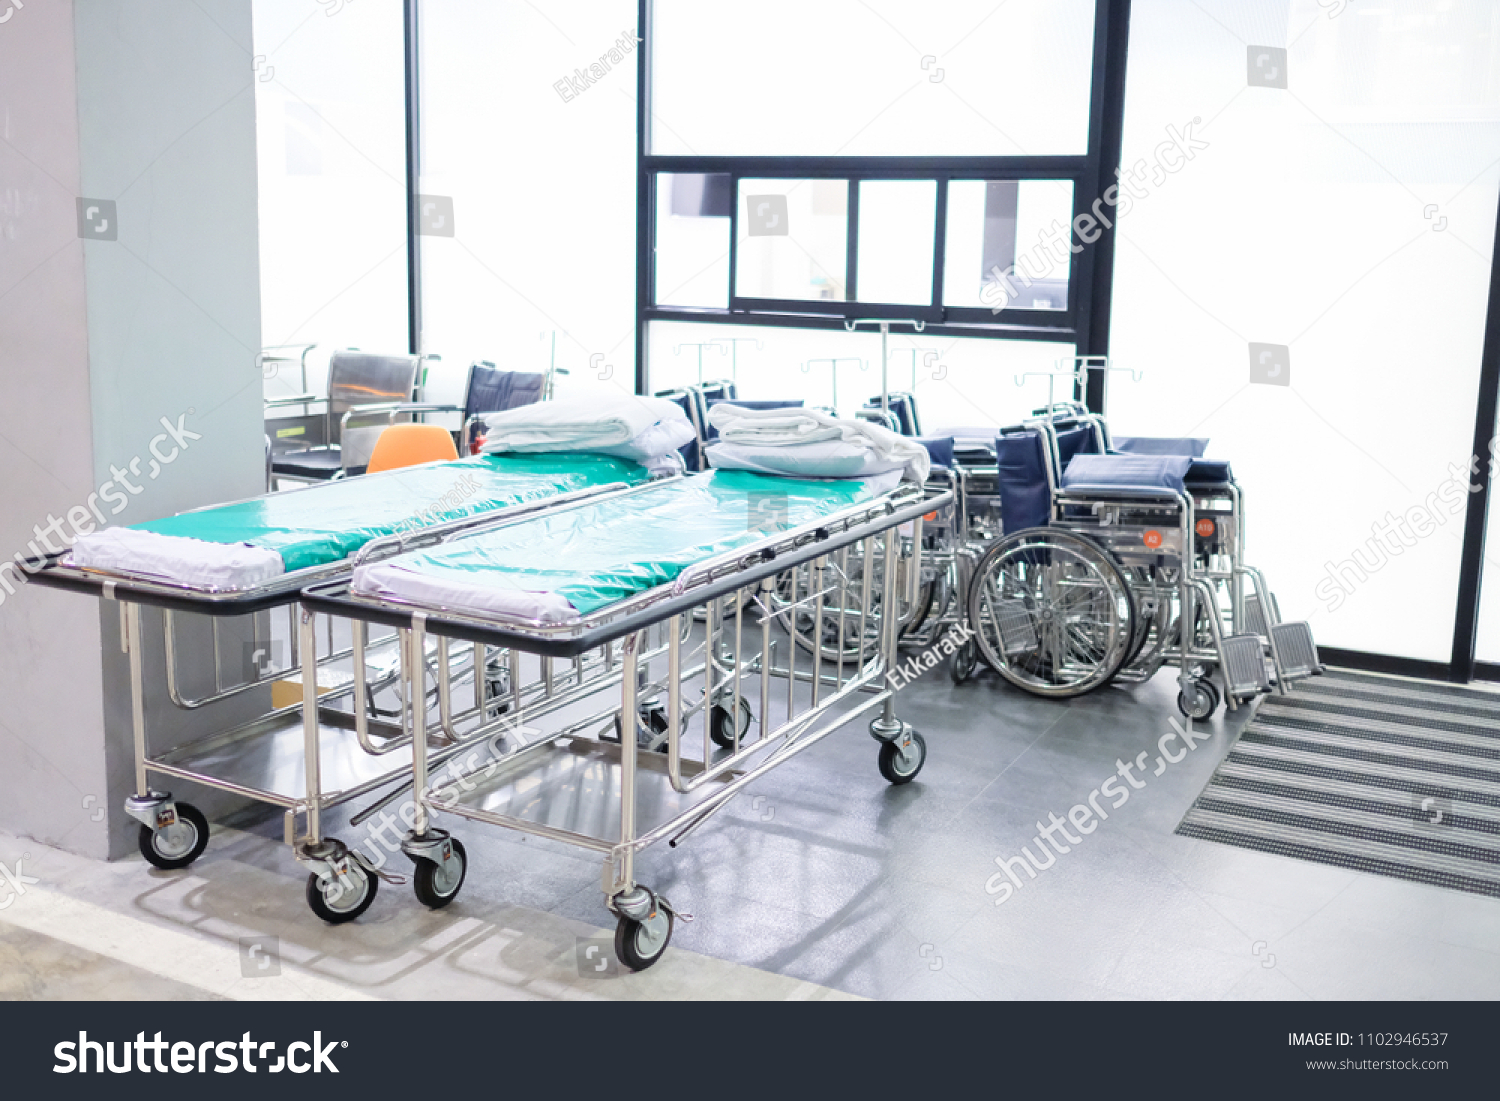 Bed Wheelchair Wheelchair Bed Hospital Stock Photo Edit Now 1102946537